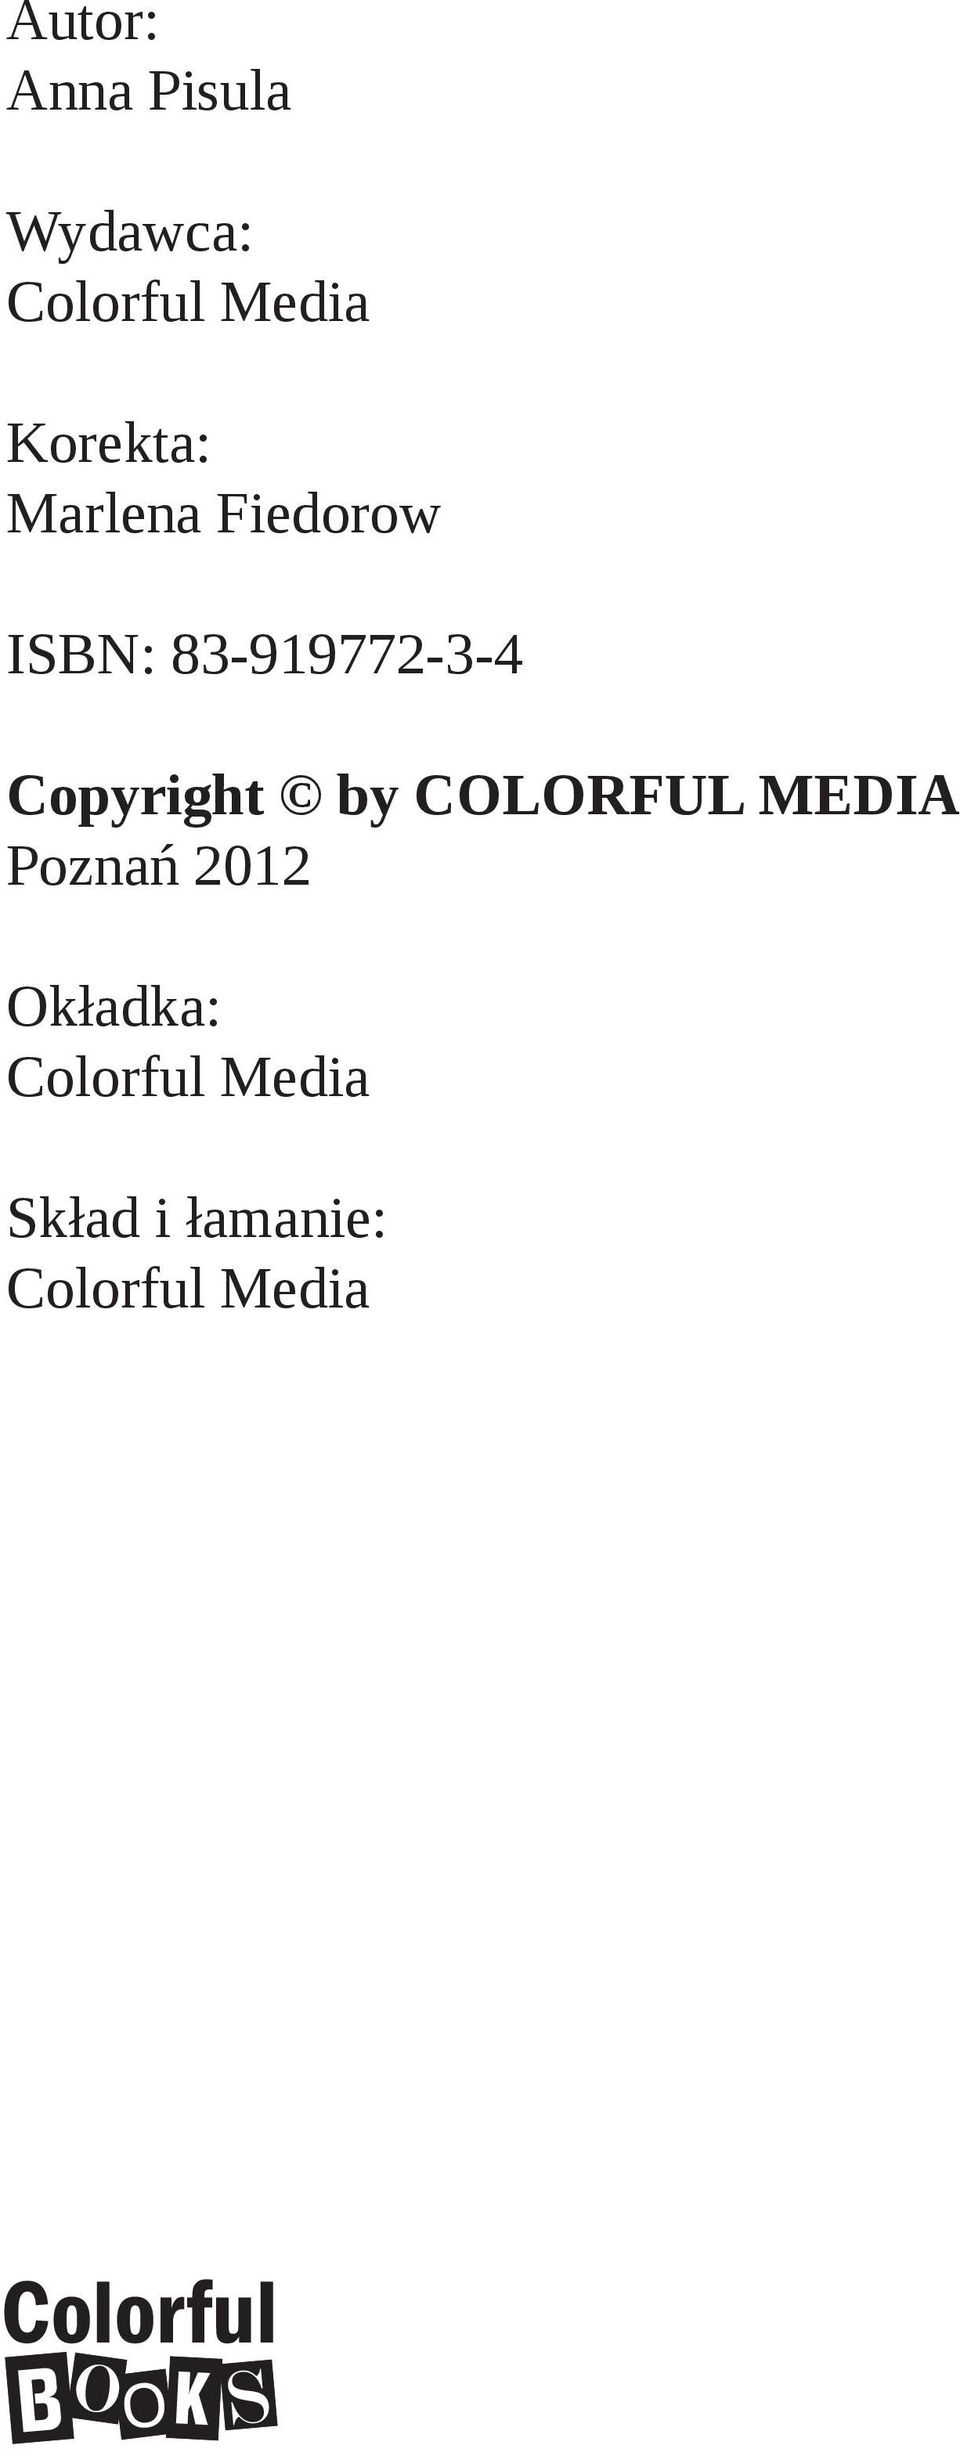 Copyright by COLORFUL MEDIA Poznań 2012 Okładka: